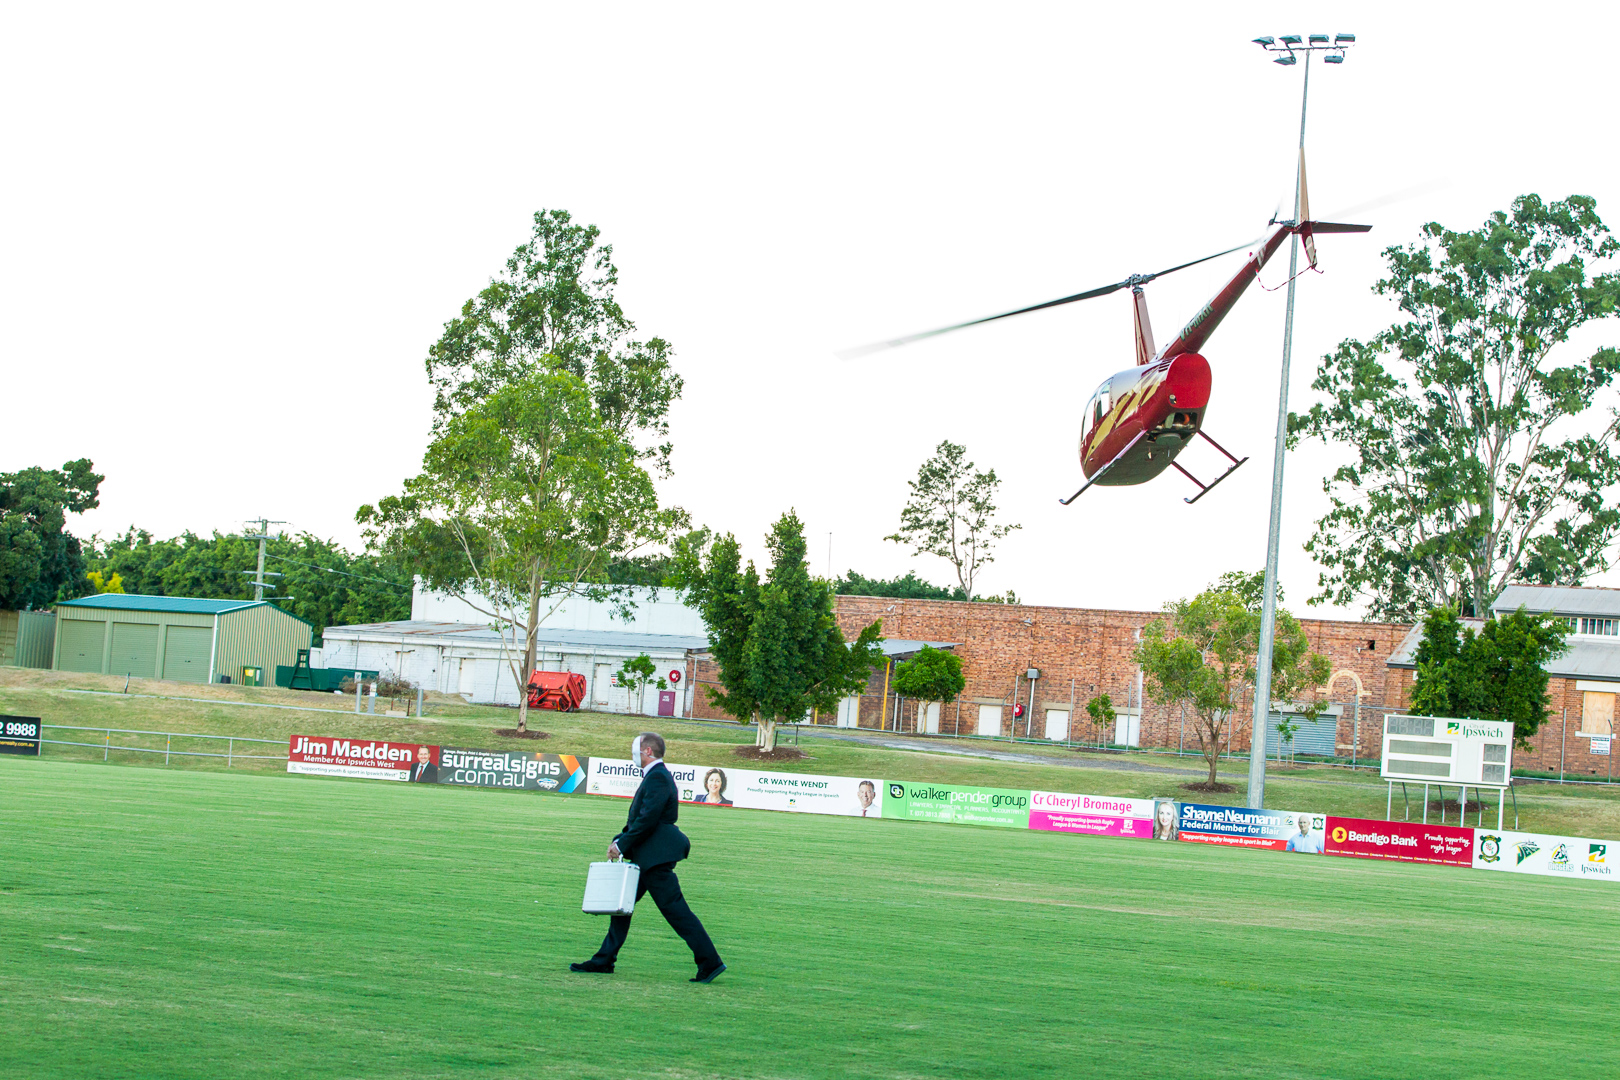 James Bond arrives in style to the North Ipswich Reserve where his 'meet' is about to take a turn for the worst. Guests had no idea a helicopter was about to land as they enjoyed some pre event drinks in the afternoon.